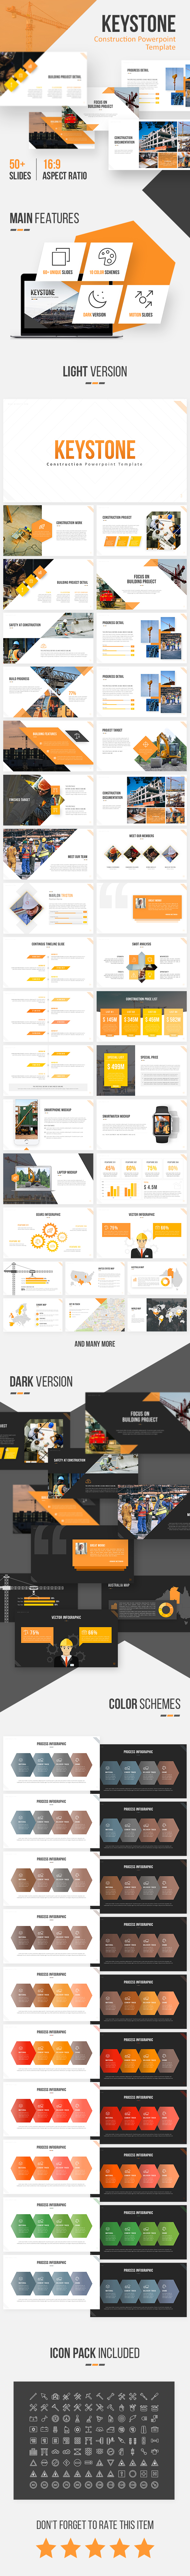 Keystone - Construction Powerpoint Template - Business PowerPoint Templates